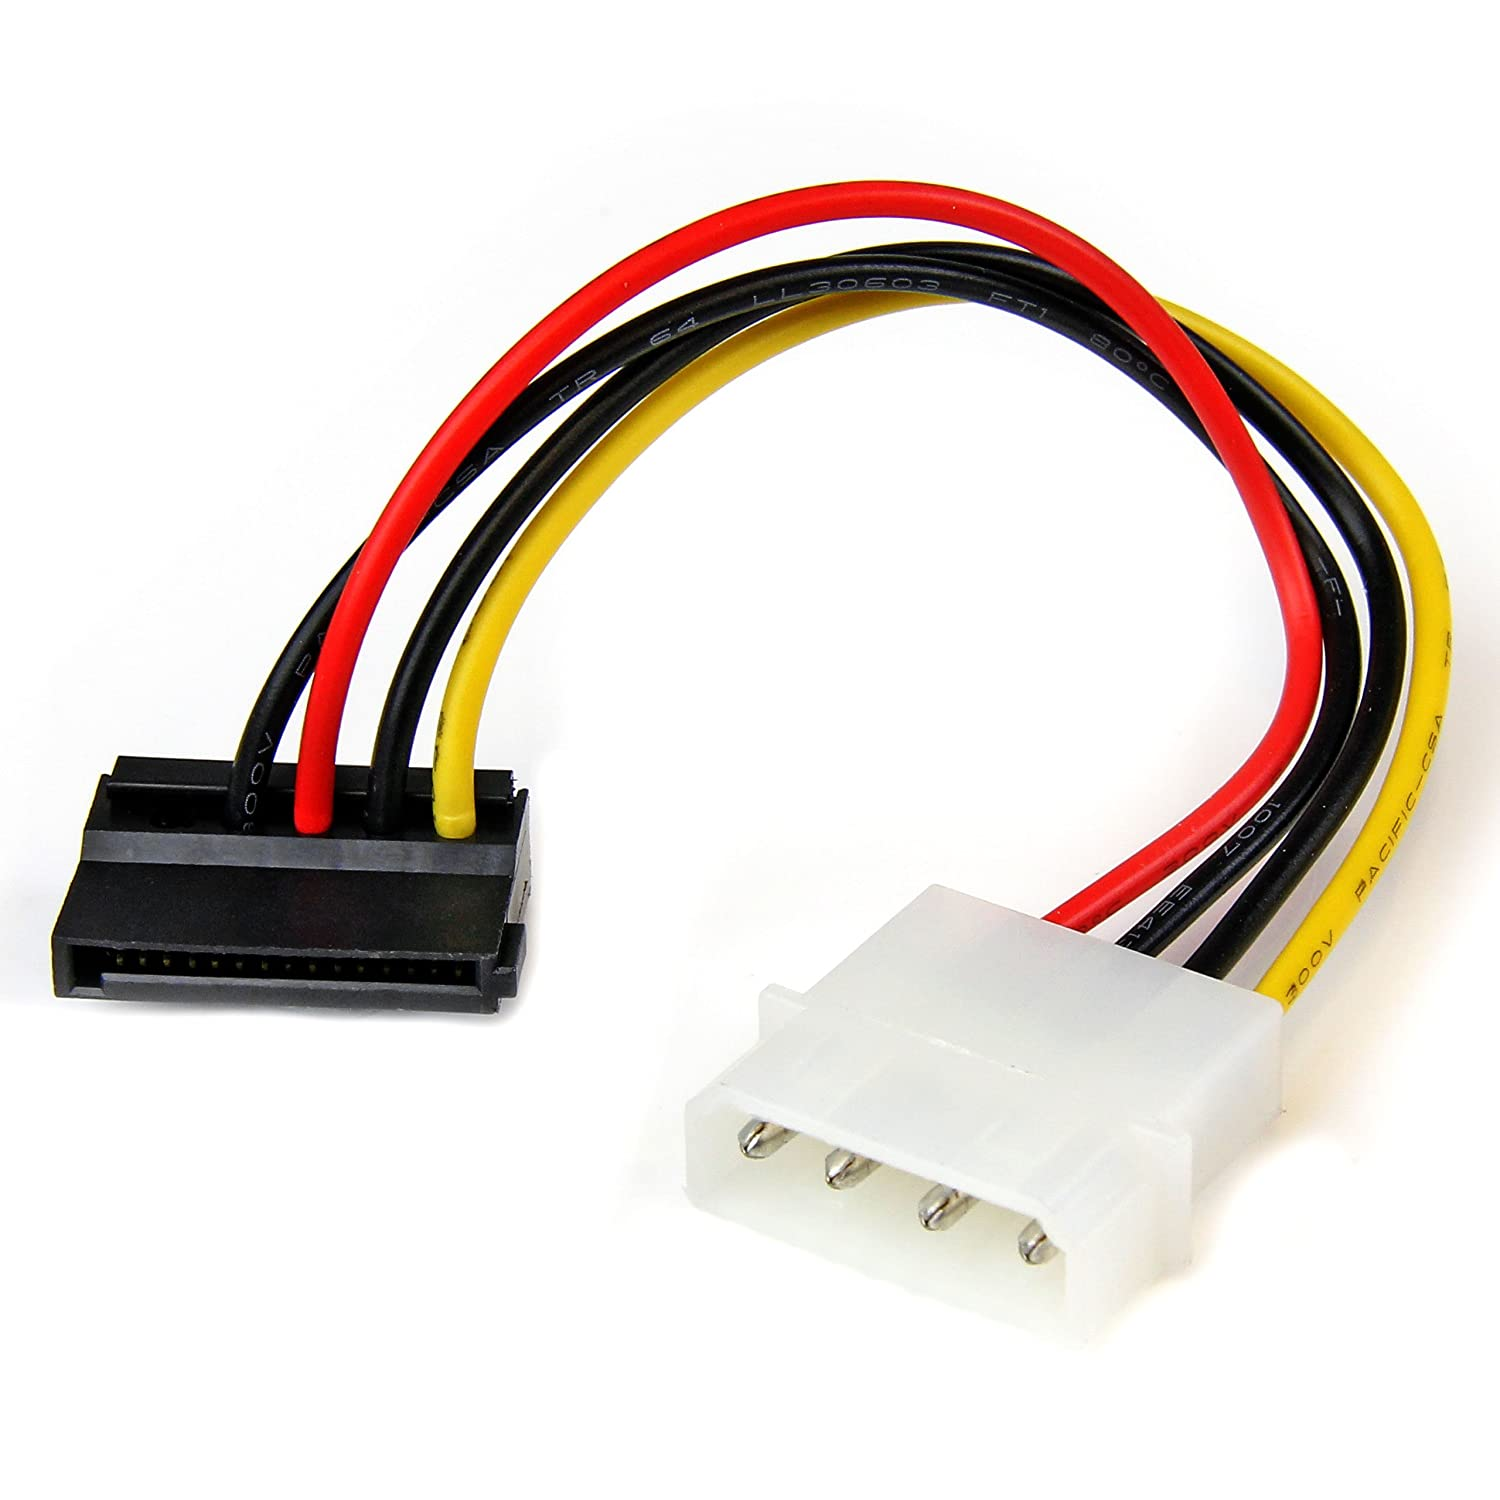 Startech 6In 4 Pin Molex to Sata Power Cable Adapter SATAPOWADAP STARTECH.COM V930429 Storage Cables